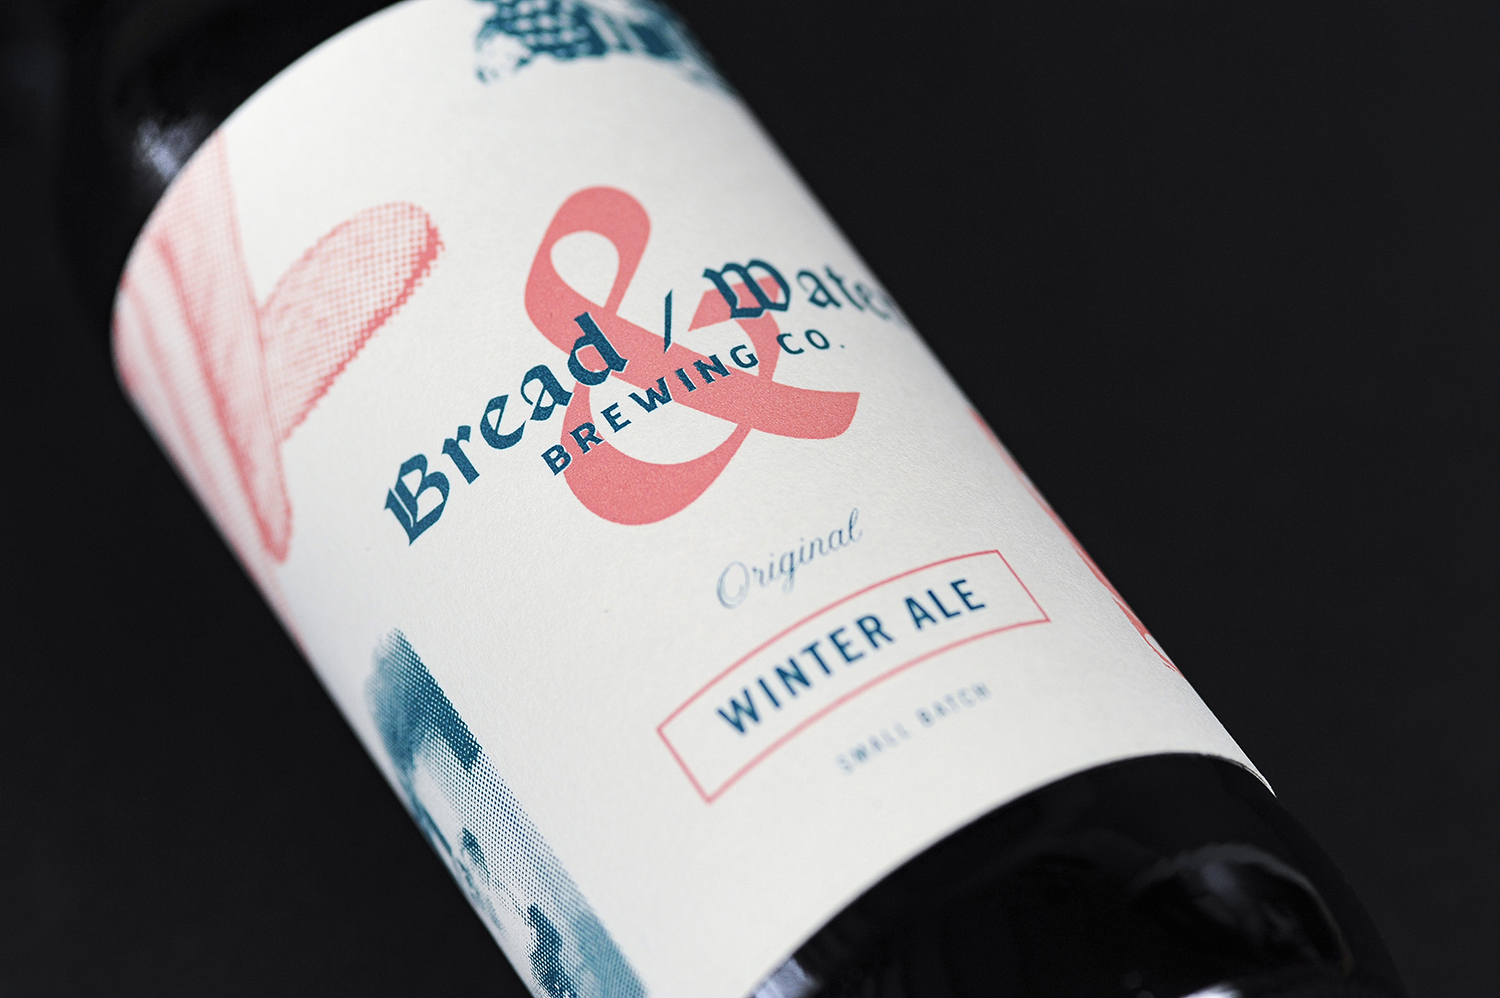 Bread and Water Brewing Company Package Design / World Brand Design Society